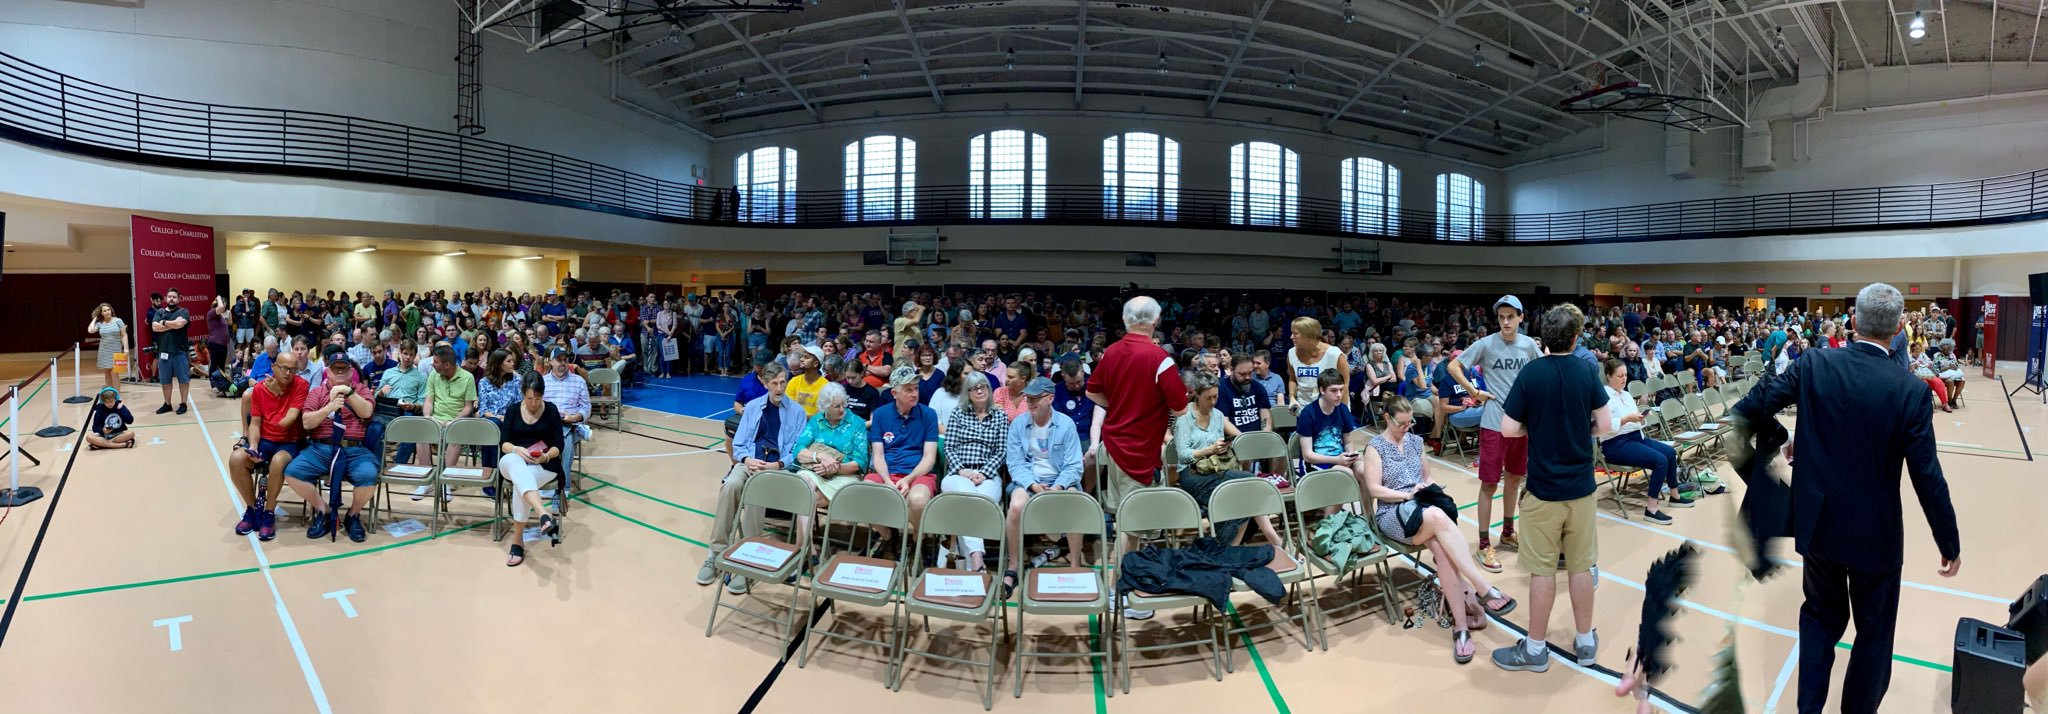 Standing room only crowd for Pete. Posted by Charleston4Pete  (LINK)